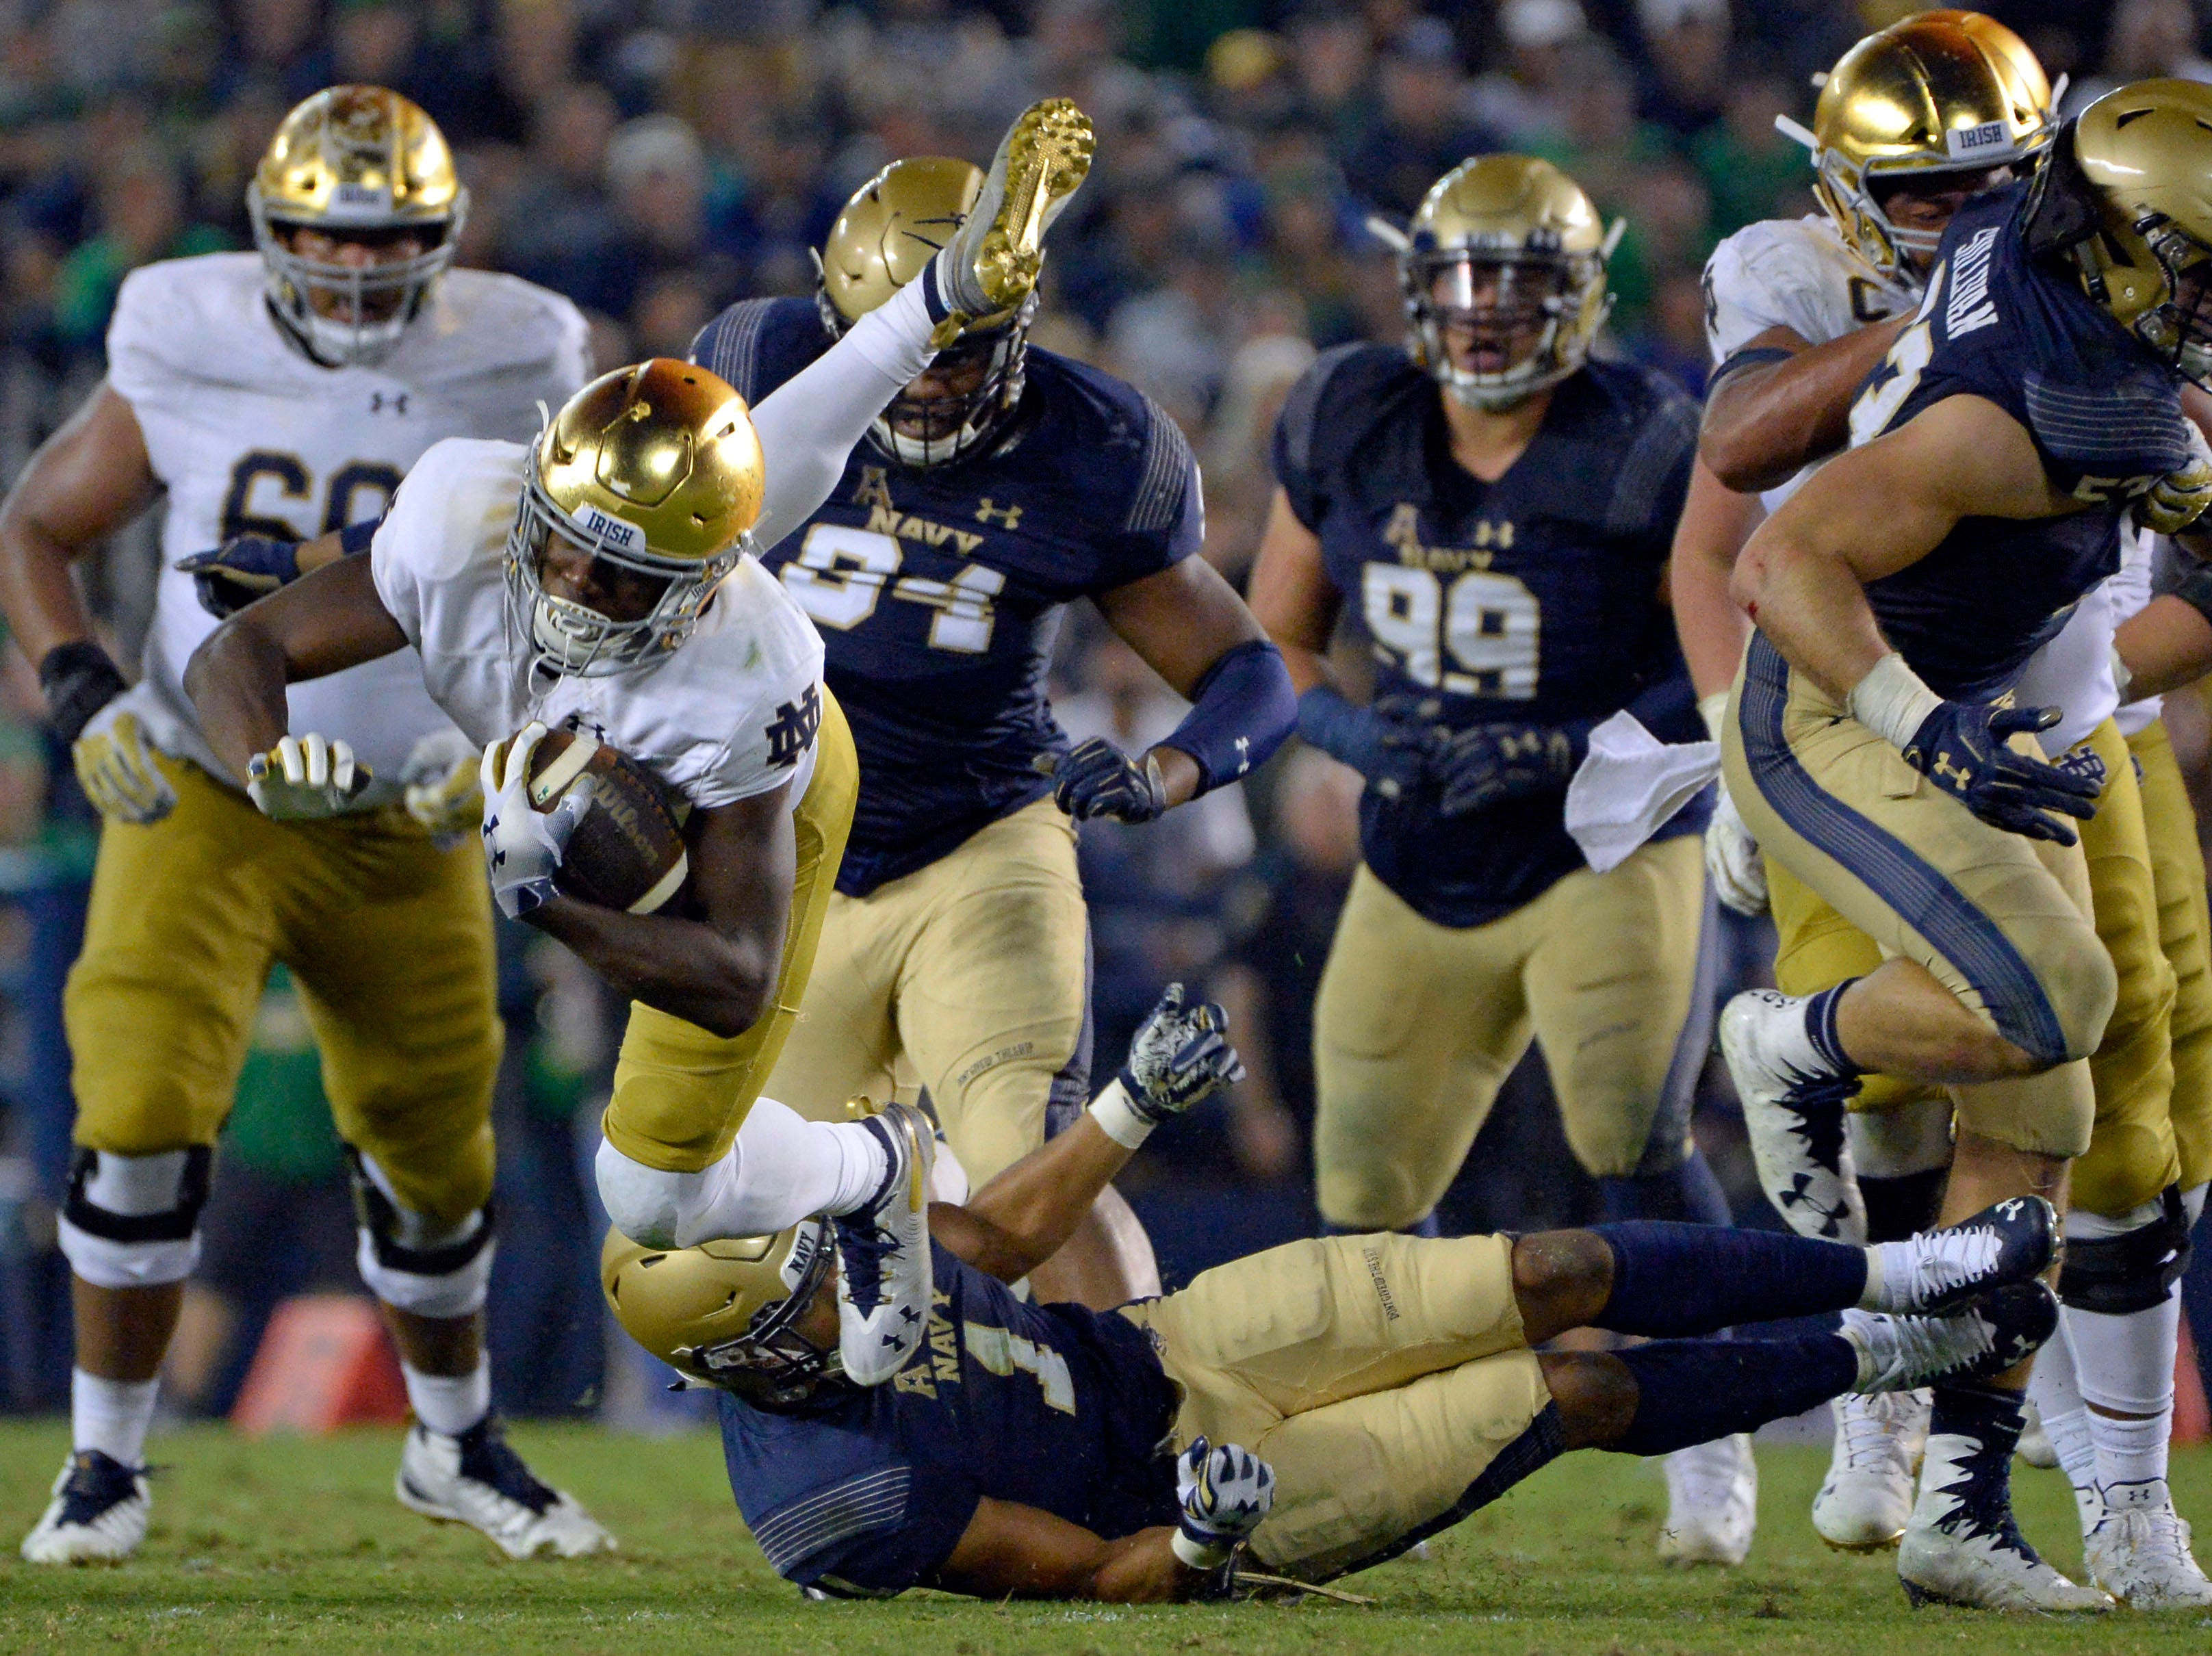 Notre Dame Fighting Irish wide receiver Jafar Armstrong (8) is tripped up by Navy Midshipmen safety Jacob Springer (1) during the fourth quarter at SDCCU Stadium.